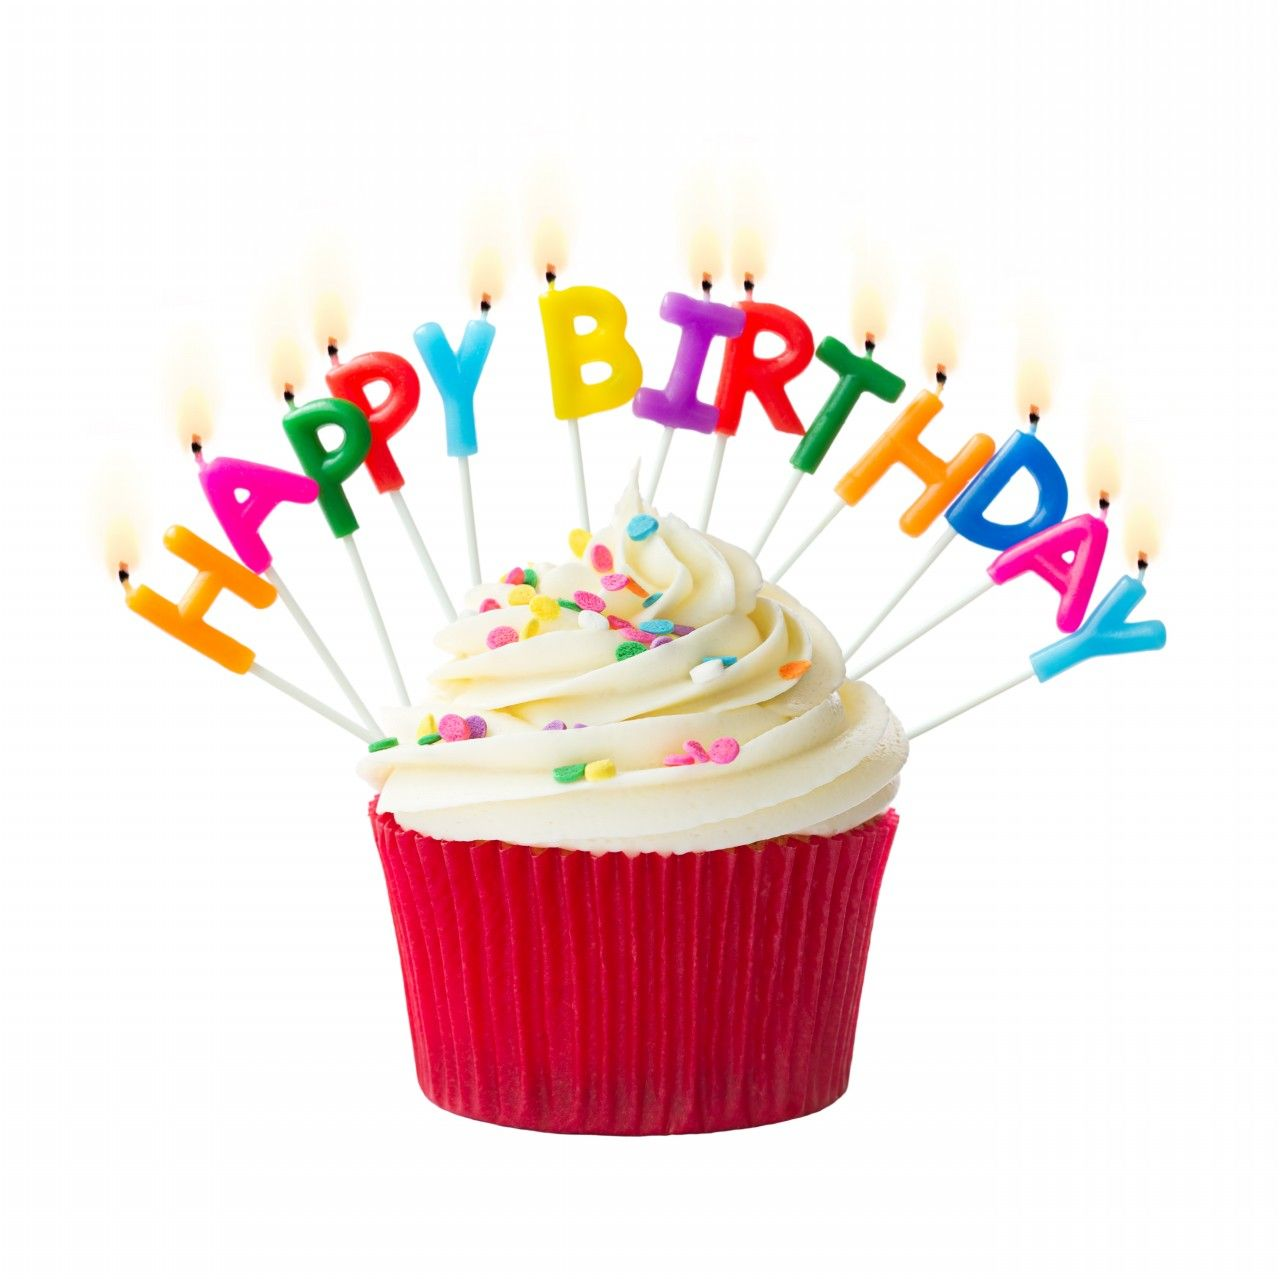 Happy Birthday Cupcakes with Candles, Cute Images